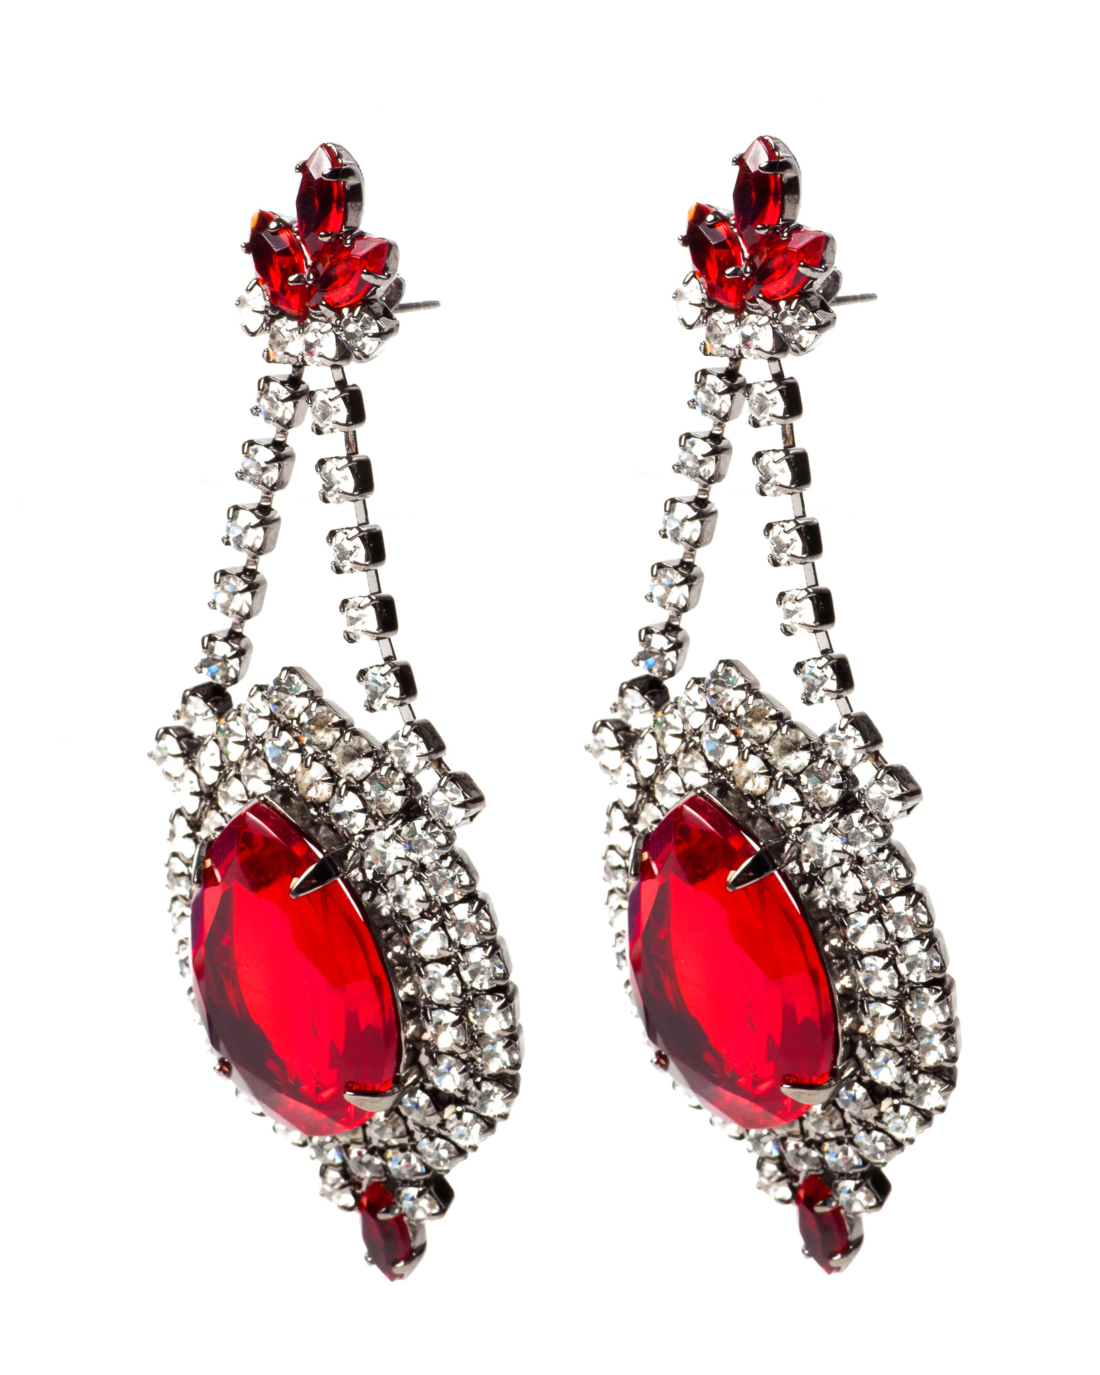 Ruby Red and Diamante Crystal Gunmetal Earrings, circa 2000's